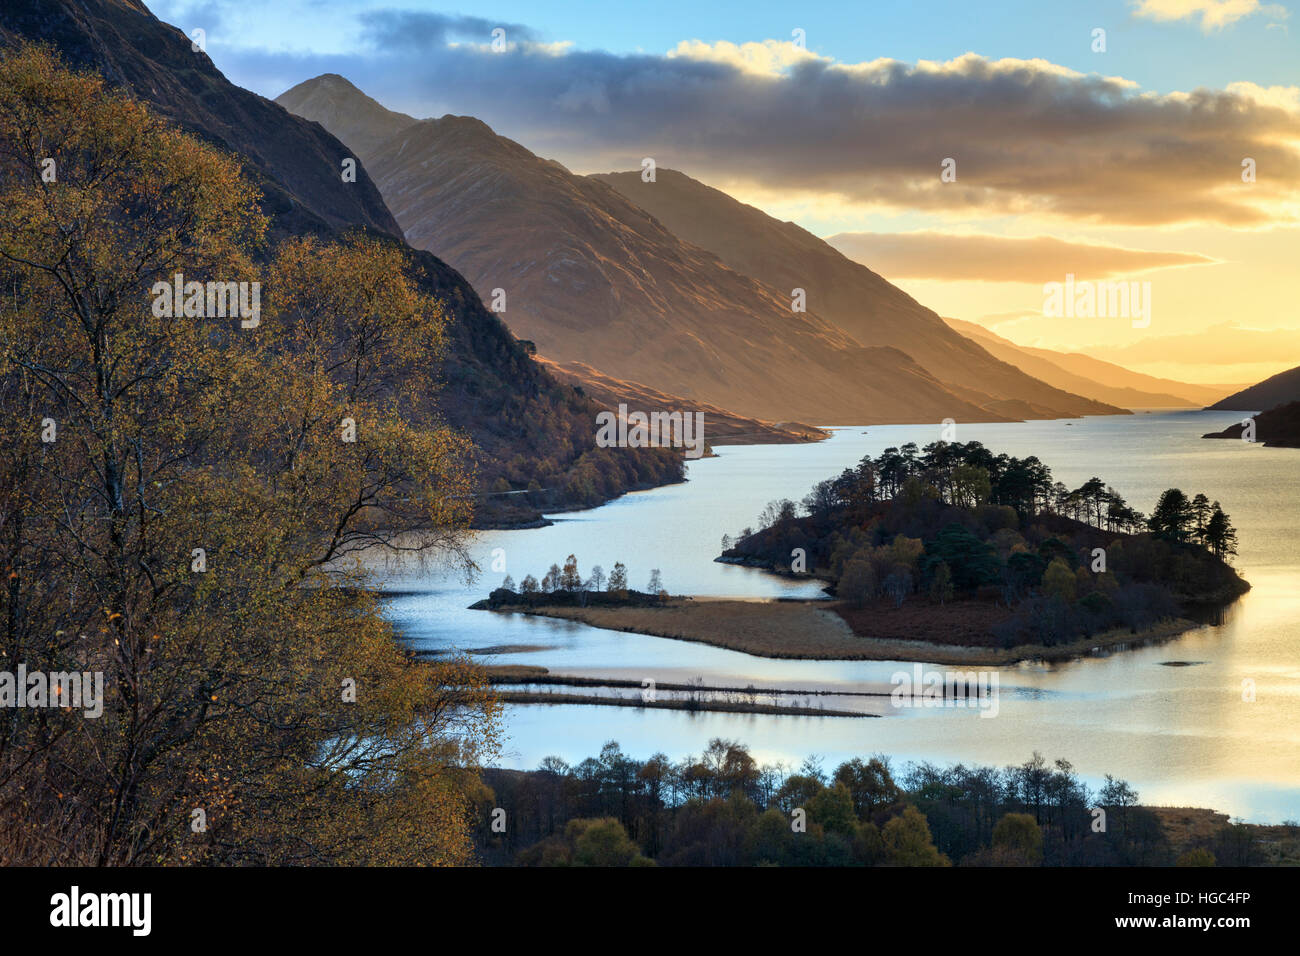 Loch Shiel at Glenfinnan in the Scottish Highlands. Stock Photo